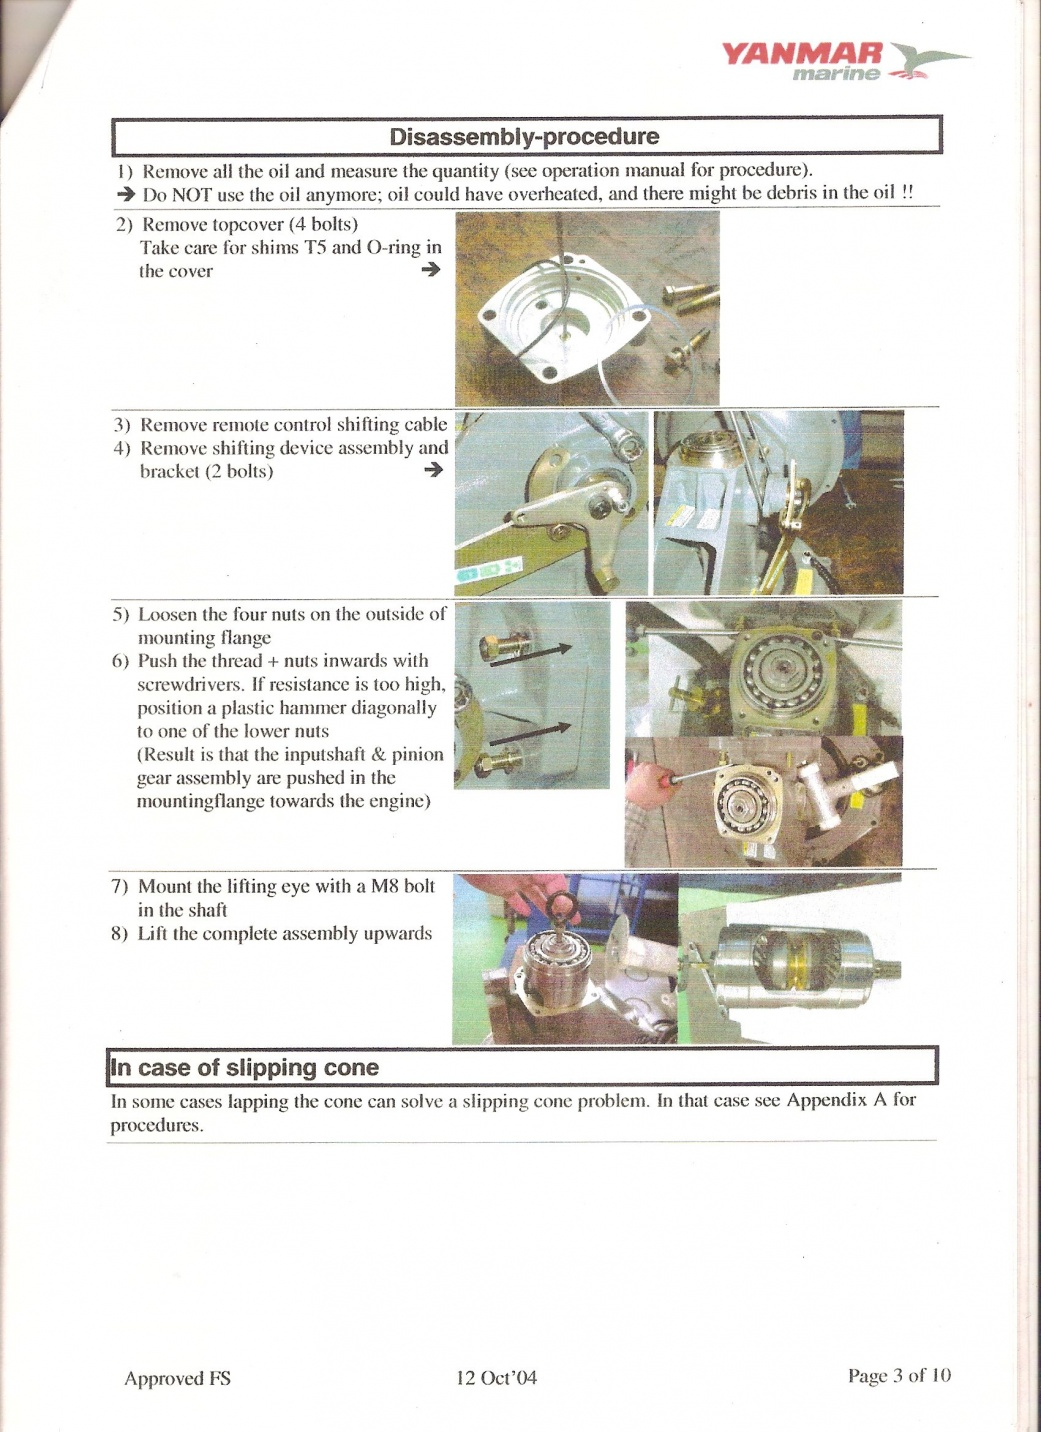 Click image for larger version  Name:Yanmar instructionsp1.jpg Views:1393 Size:412.6 KB ID:54723